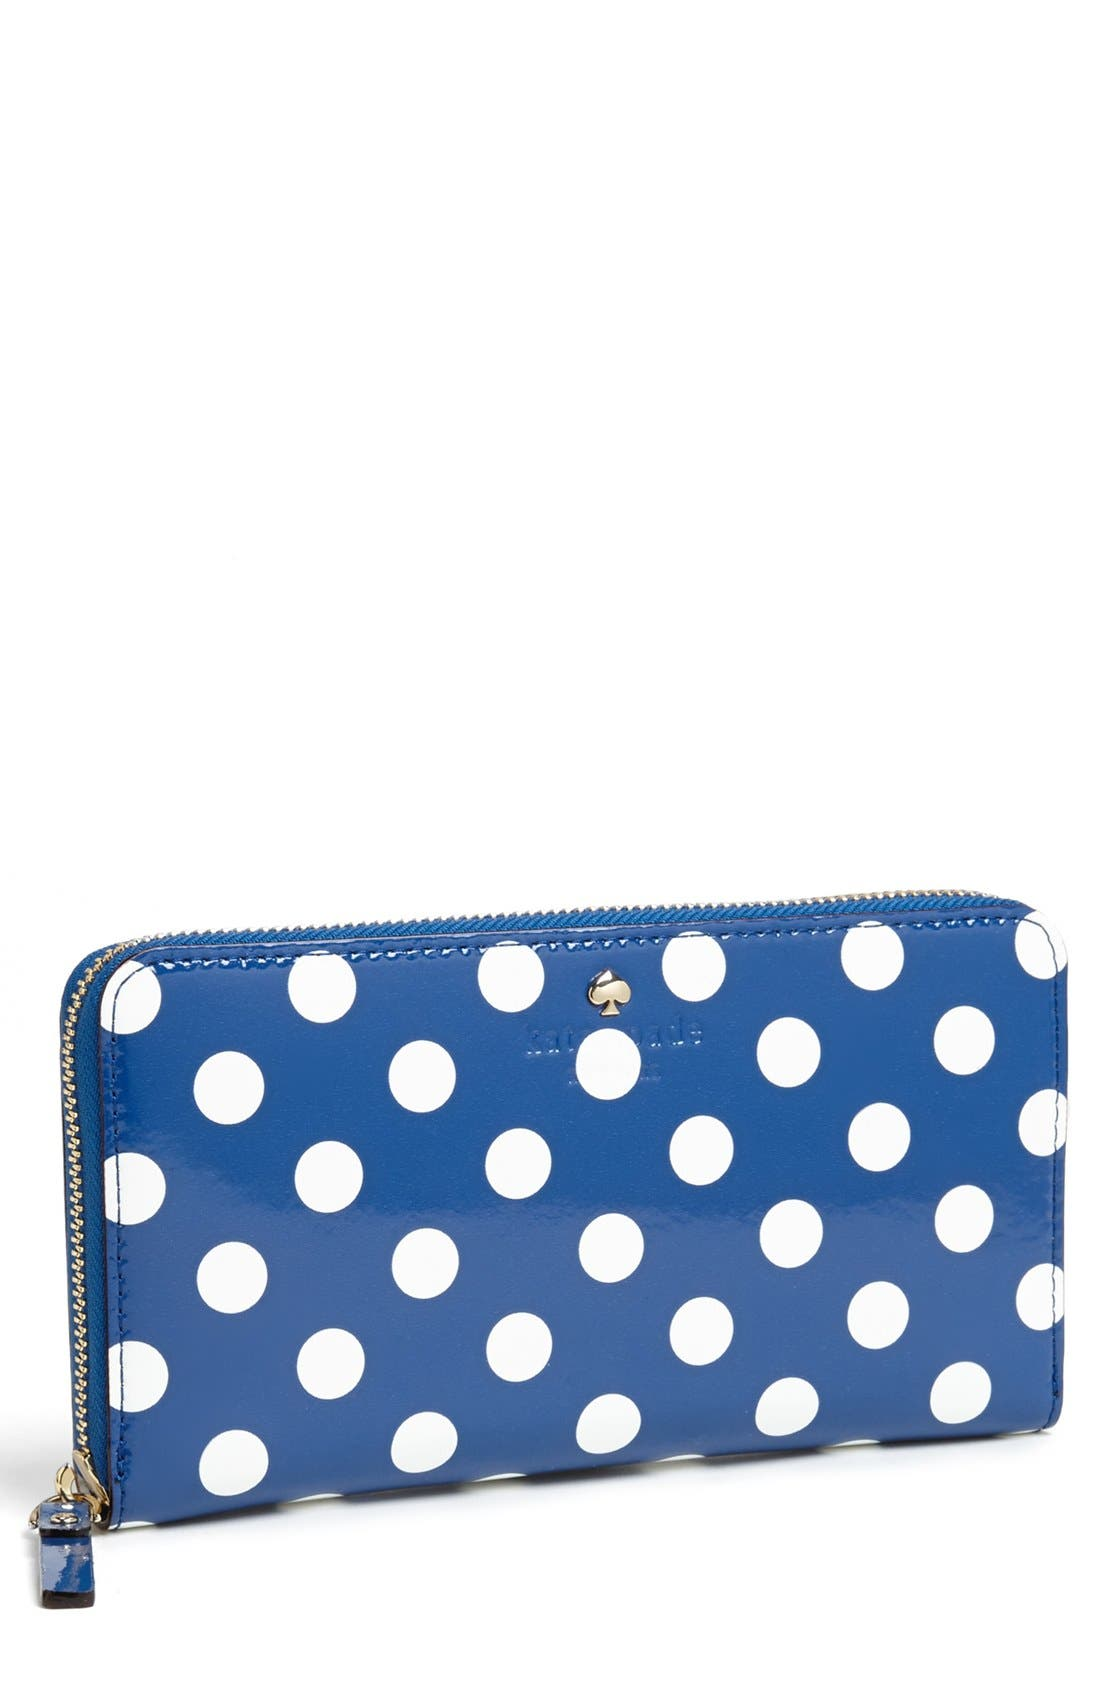 Main Image - kate spade new york 'carlise street - lacey' zip around wallet